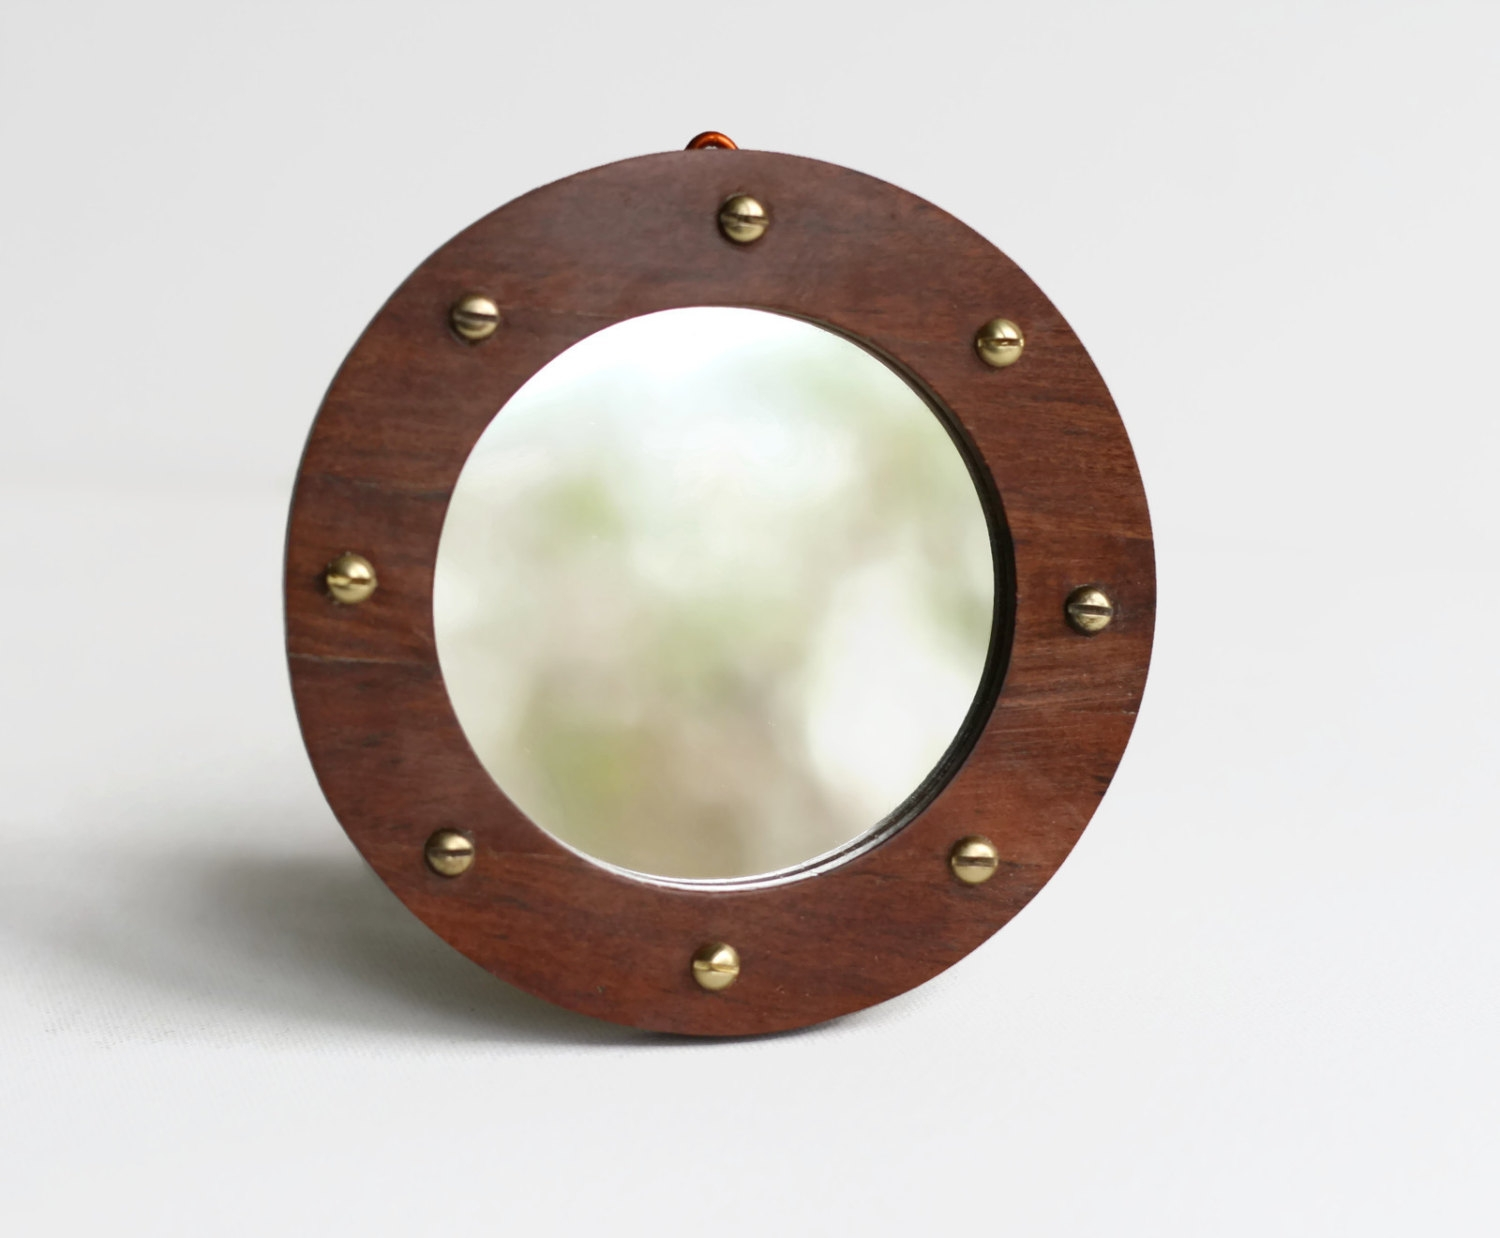 Porthole Mirror Etsy Regarding Round Porthole Mirror (Image 7 of 15)